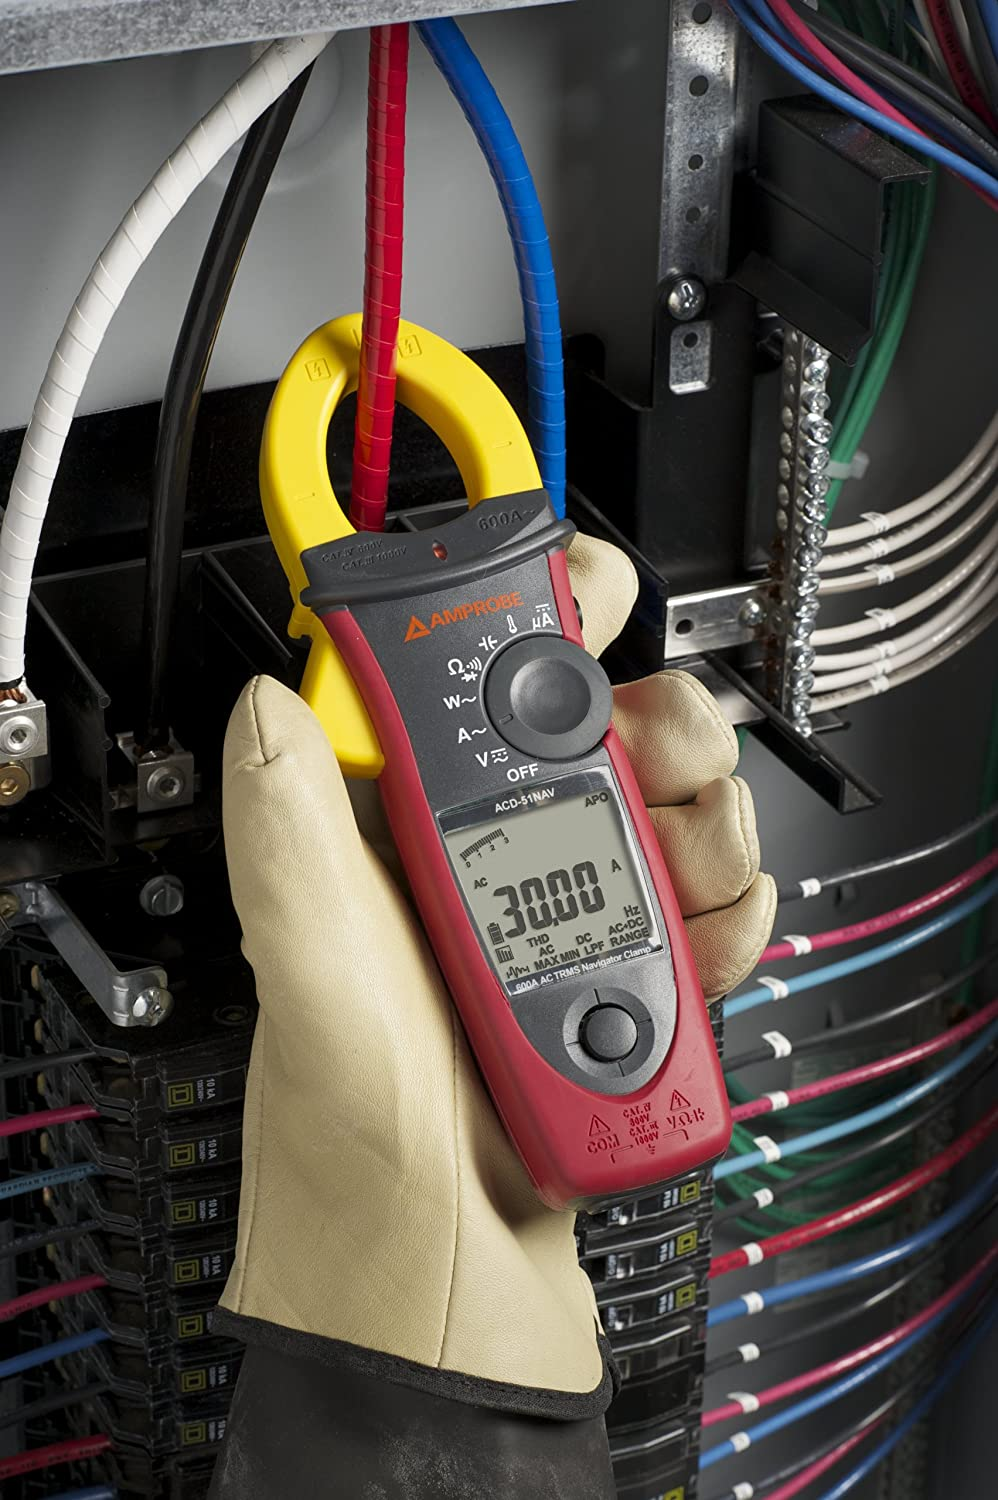 50 Amp Welder Plug Wiring Diagram Everlast Powerpro 205 Tig Acd Power Box Is Very Easy To Install No Need Cut The Wires Or Amprobe 50nav 600a Ac Quality Clamp Meter Amazoncom Industrial Scientific